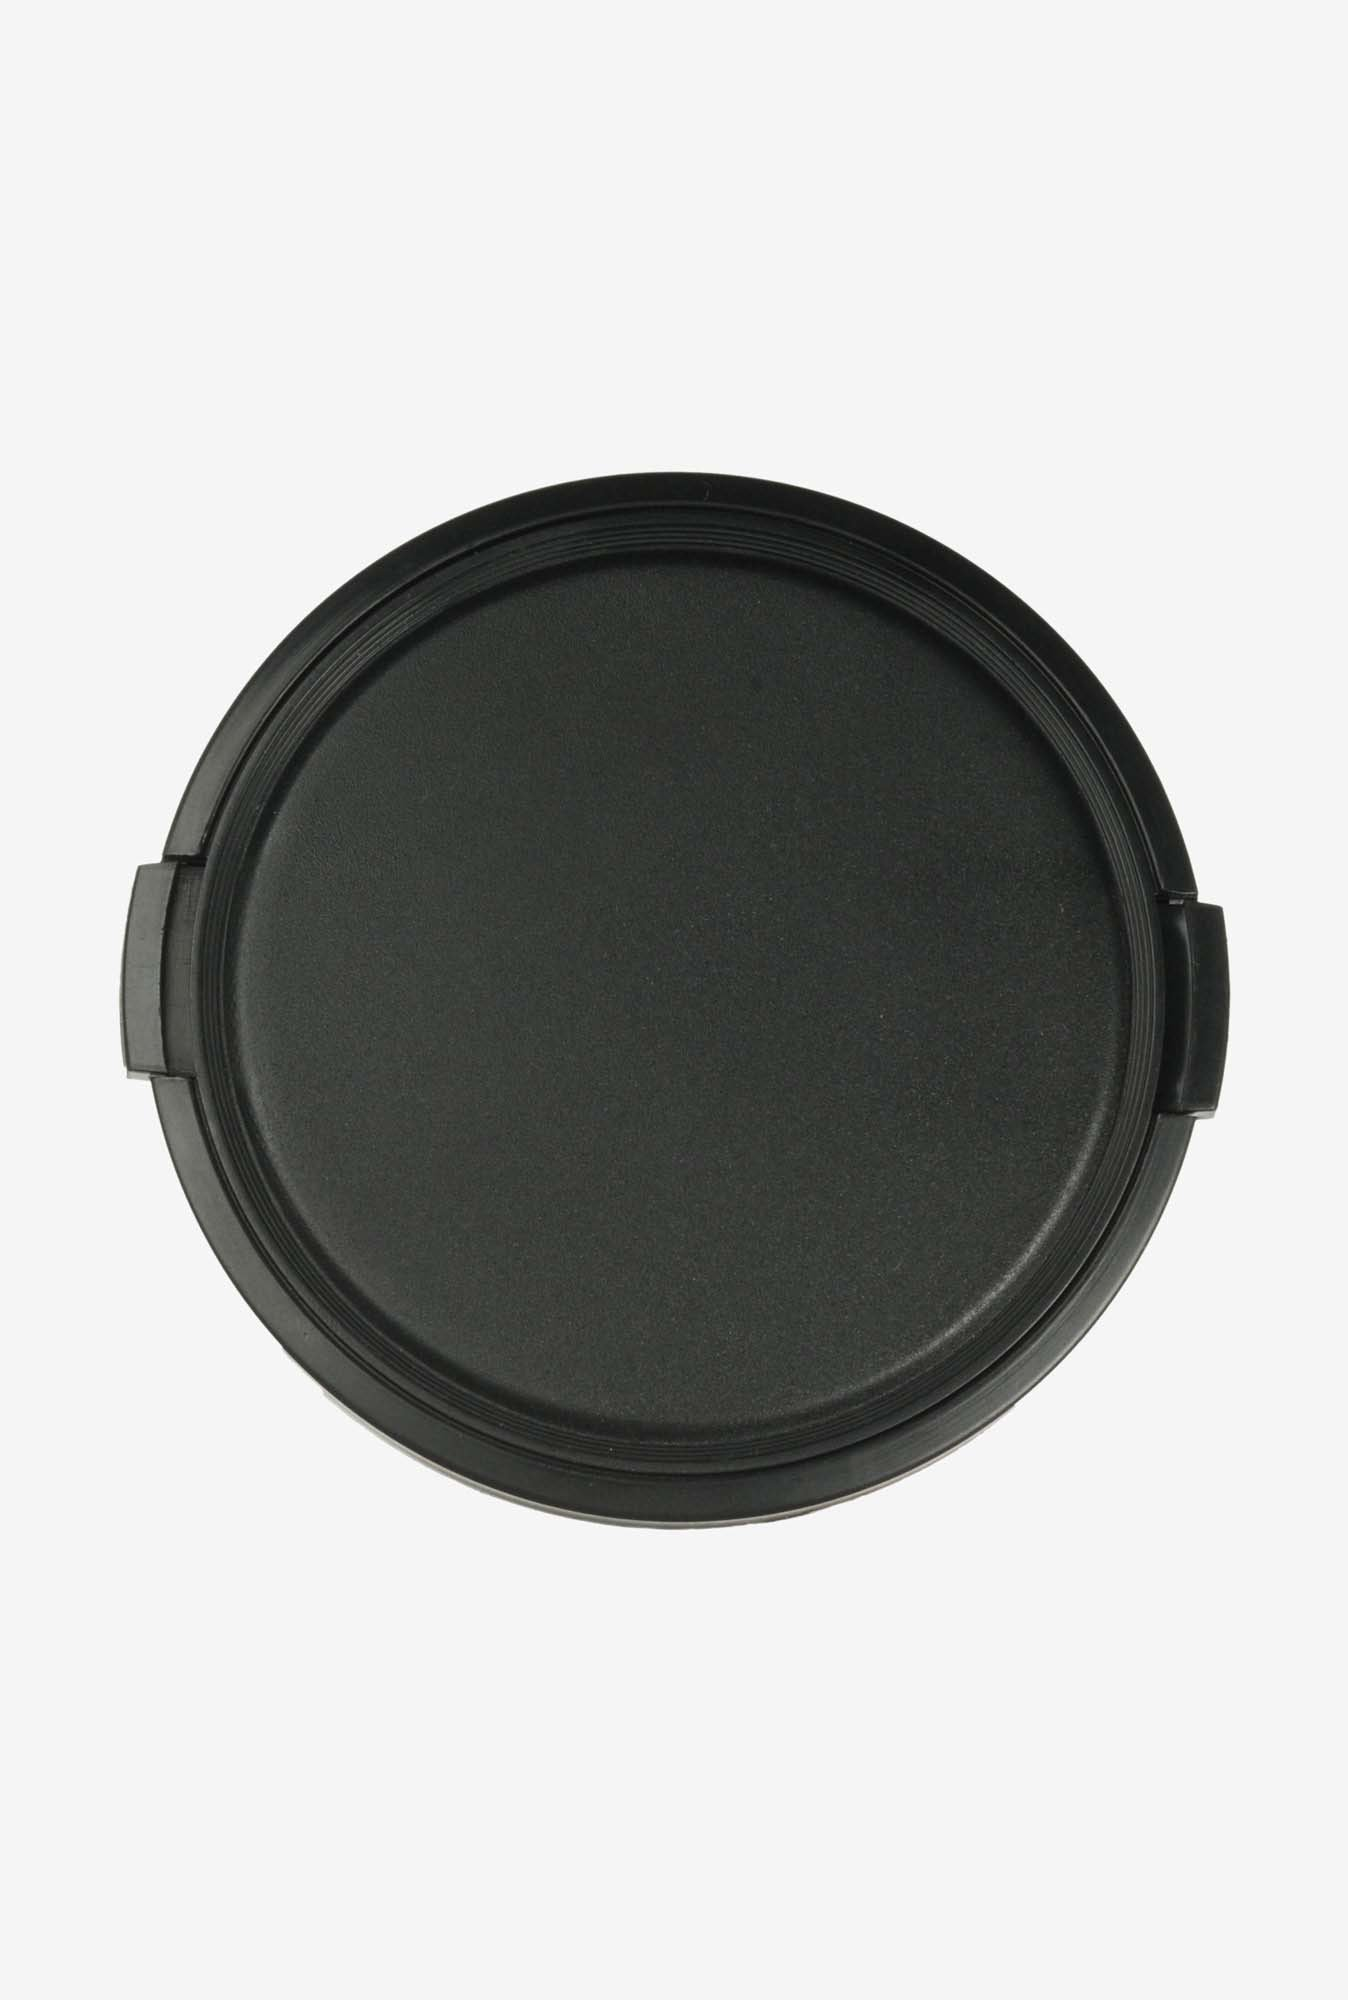 Sensei LCC52 52mm Clip-On Lens Cap (Black)